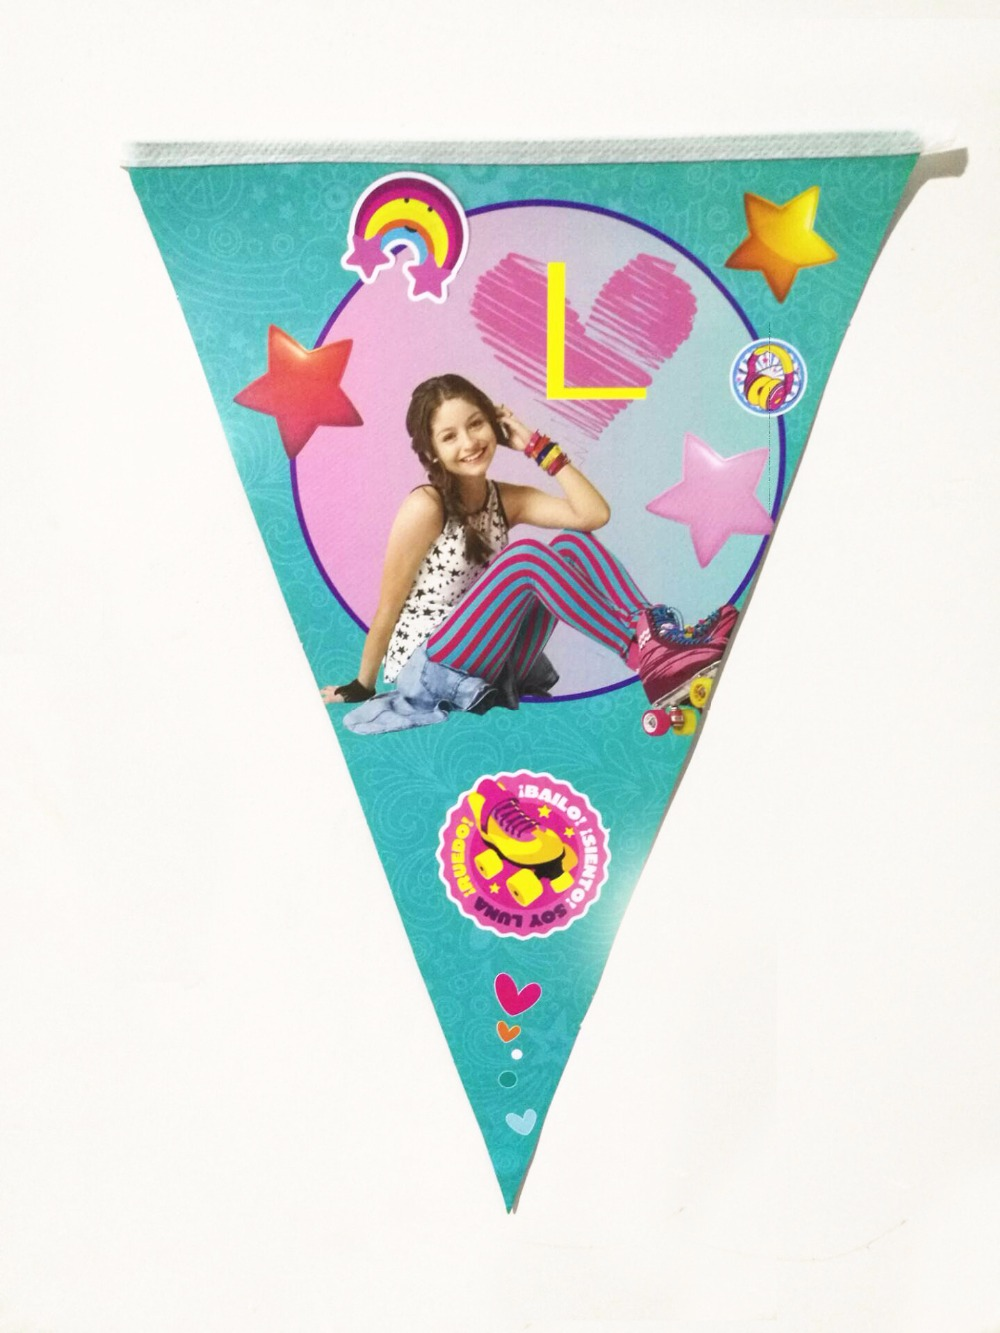 1set Soy Luna paper banner happy birthday party flag Kids girl favor party decoration Soy Luna flag party supplies